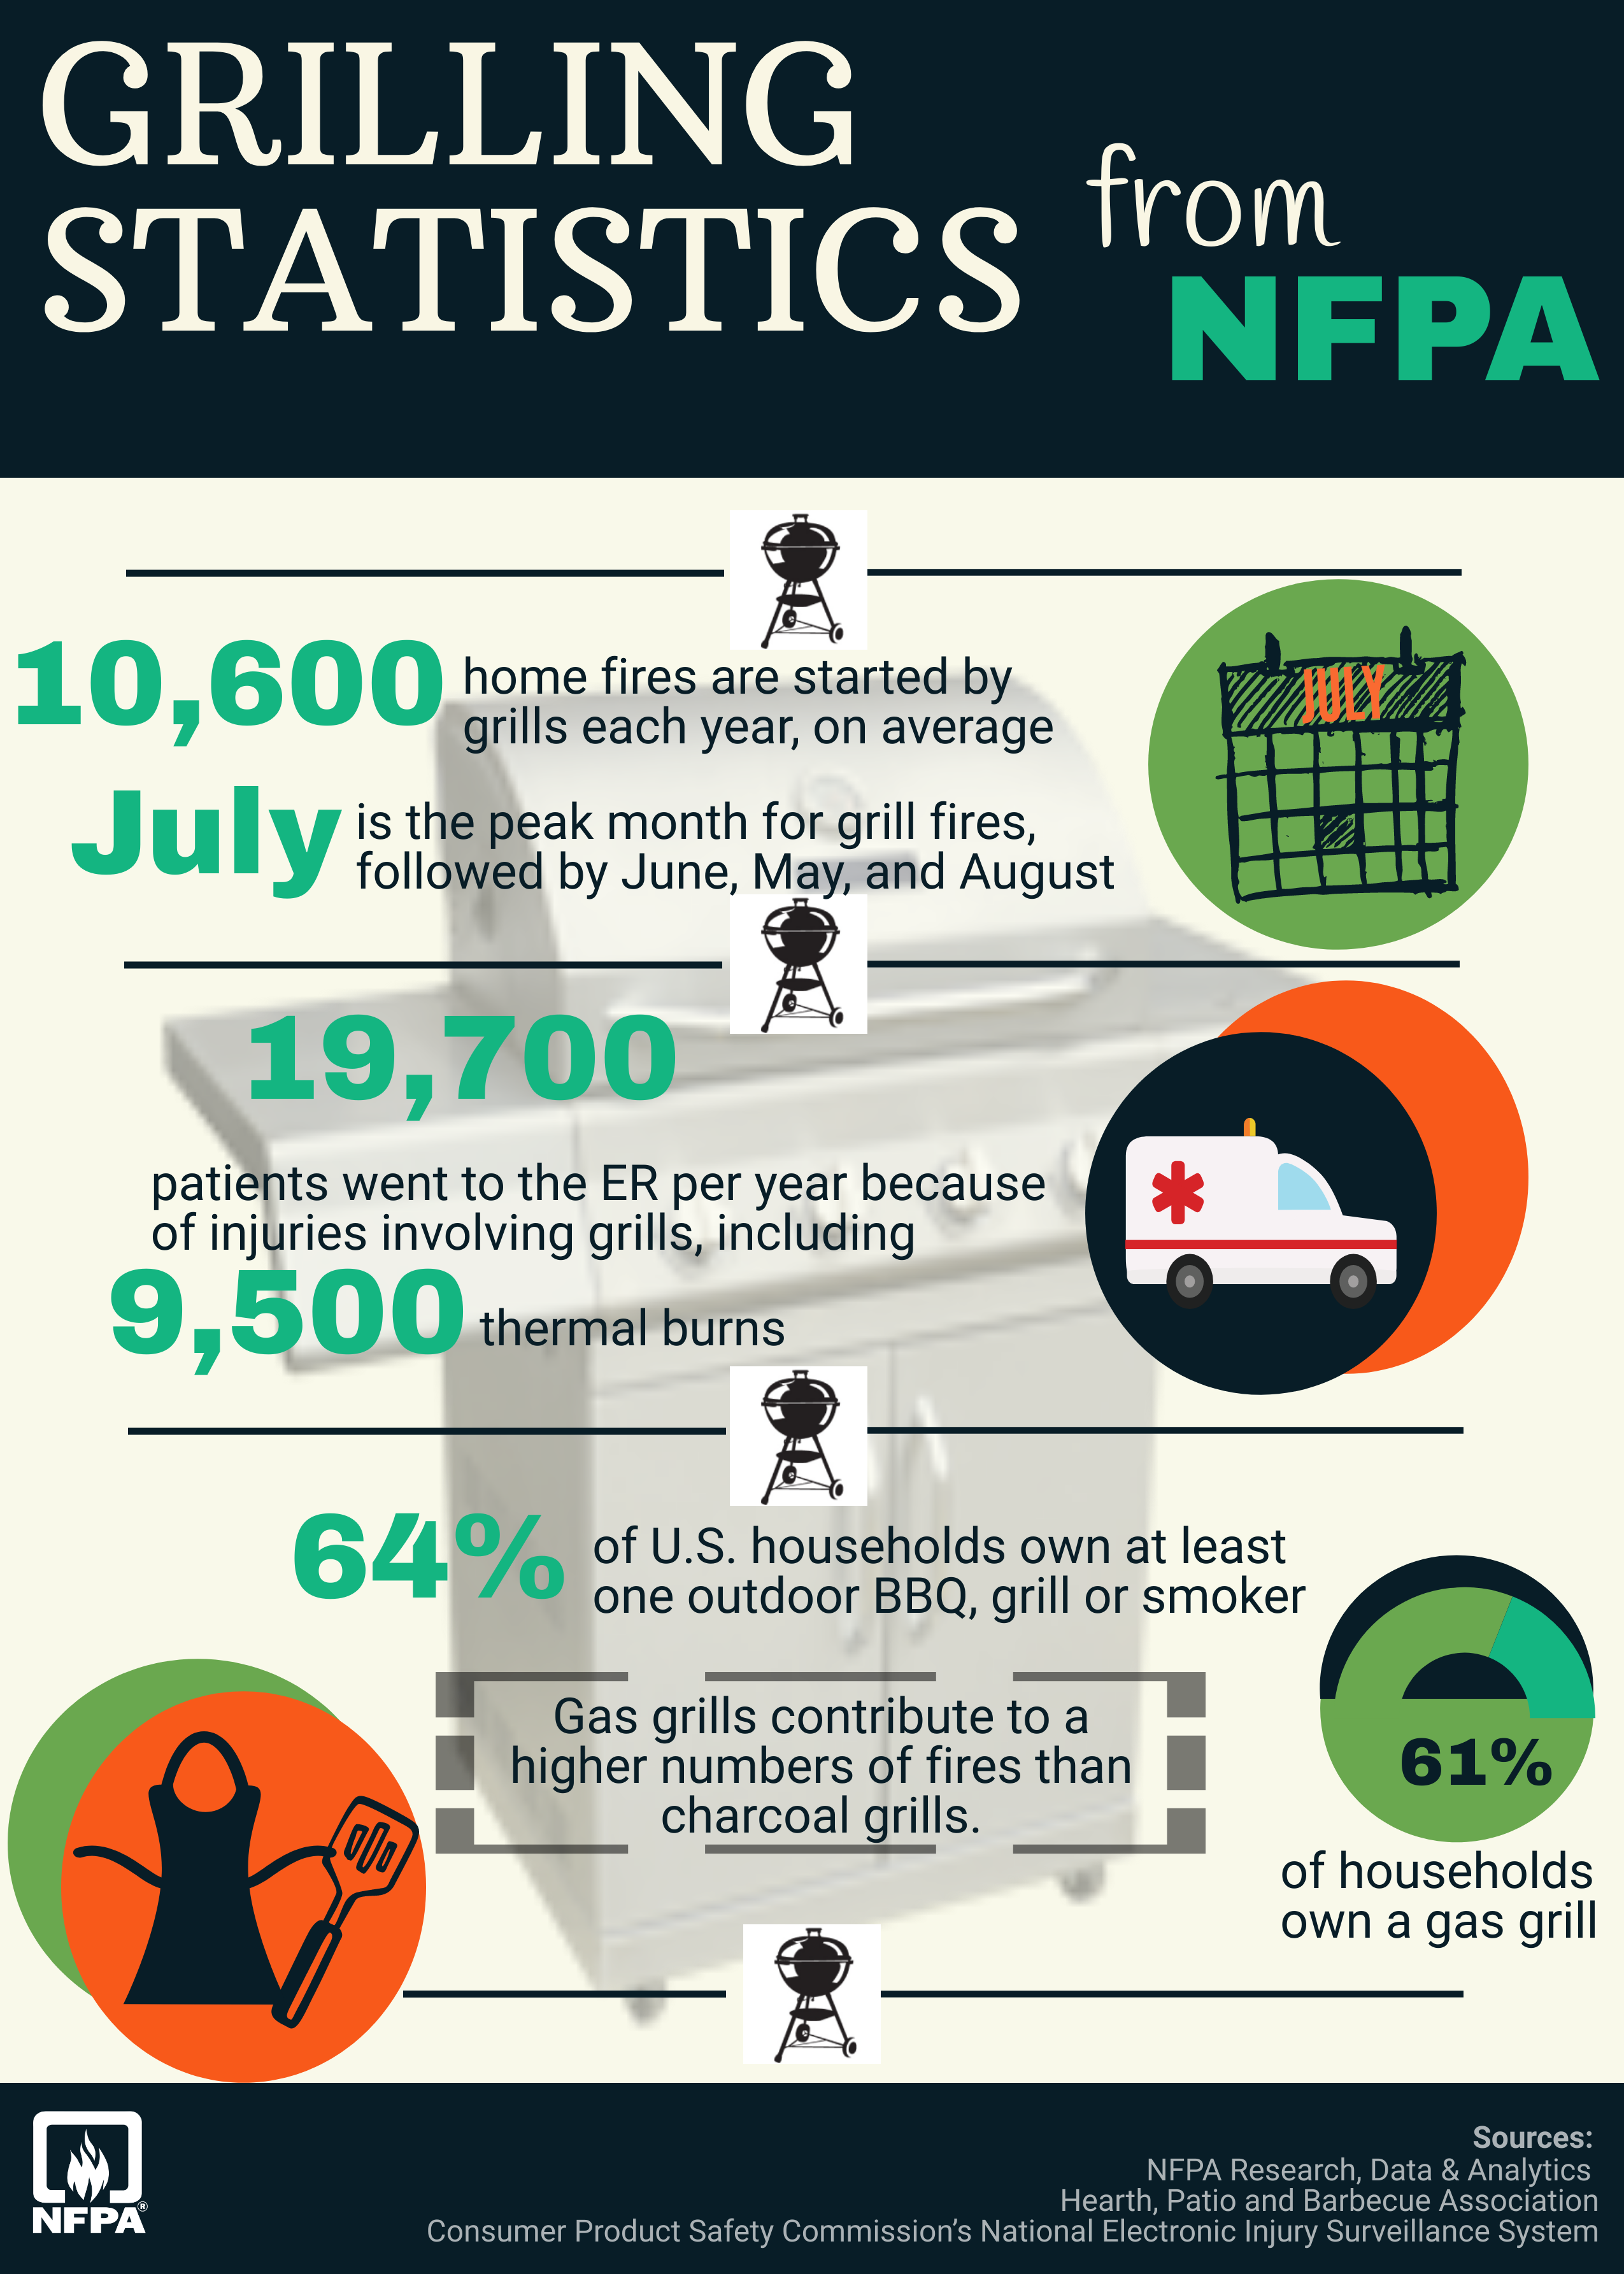 grilling statistics from NFPA